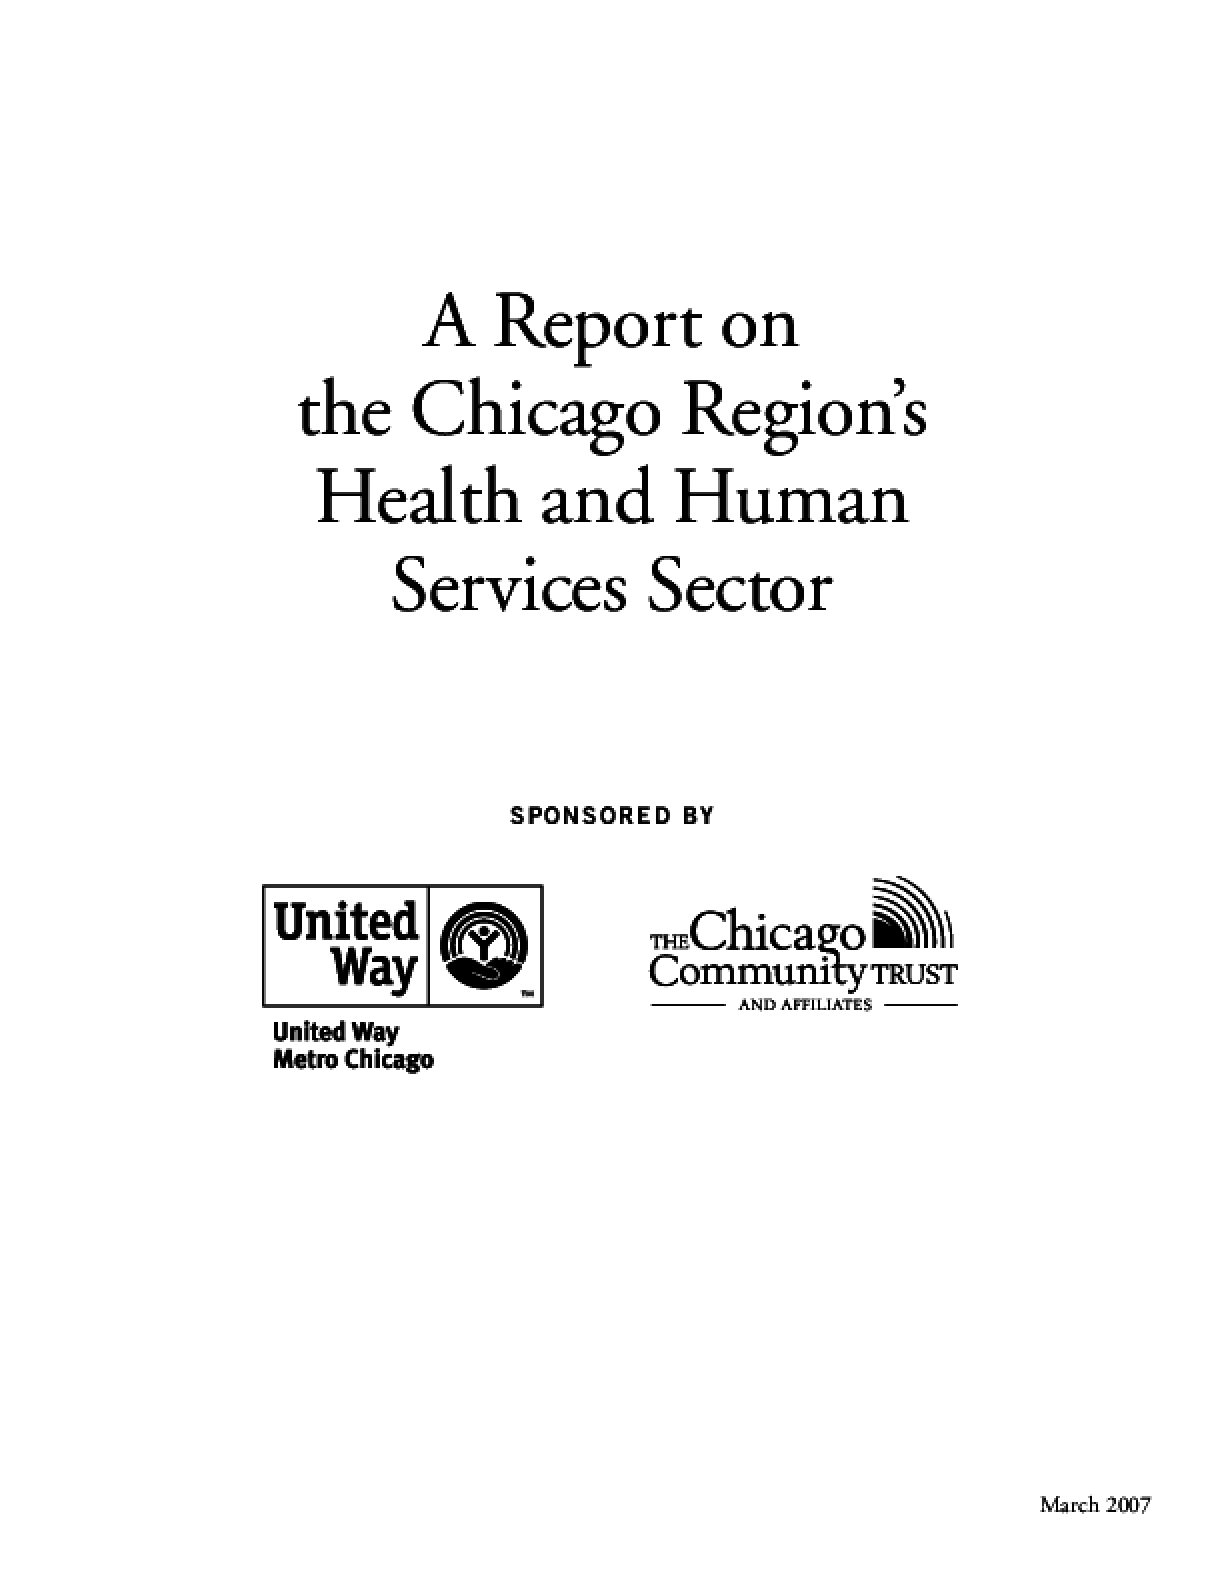 A Report on the Chicago Region's Health and Human Services Sector